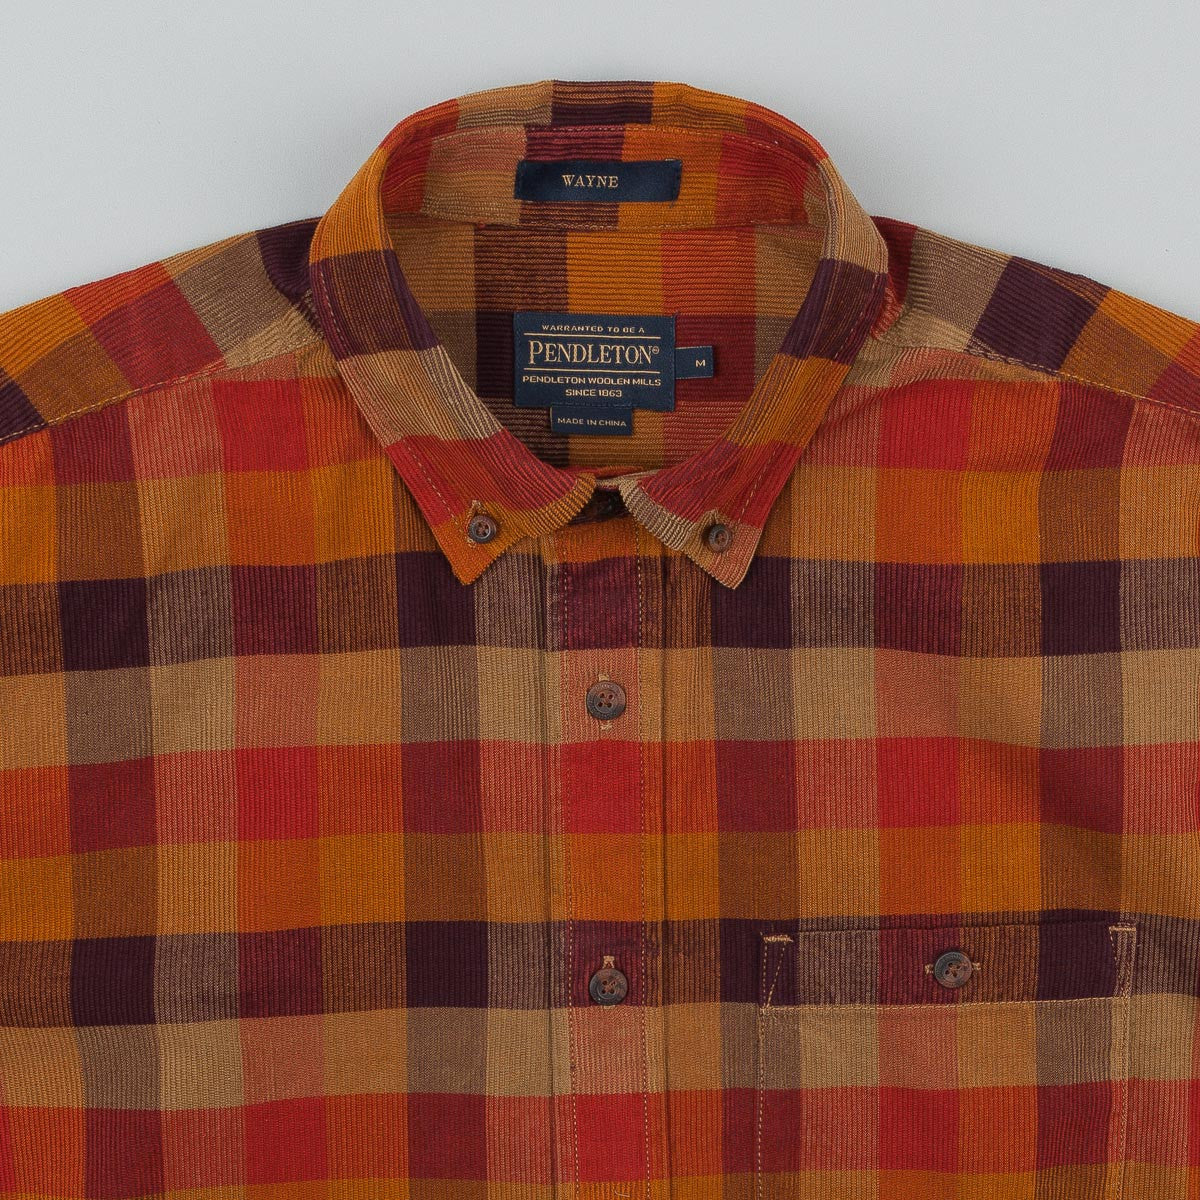 Pendleton Wayne Button Down Waled Shirt - Tan